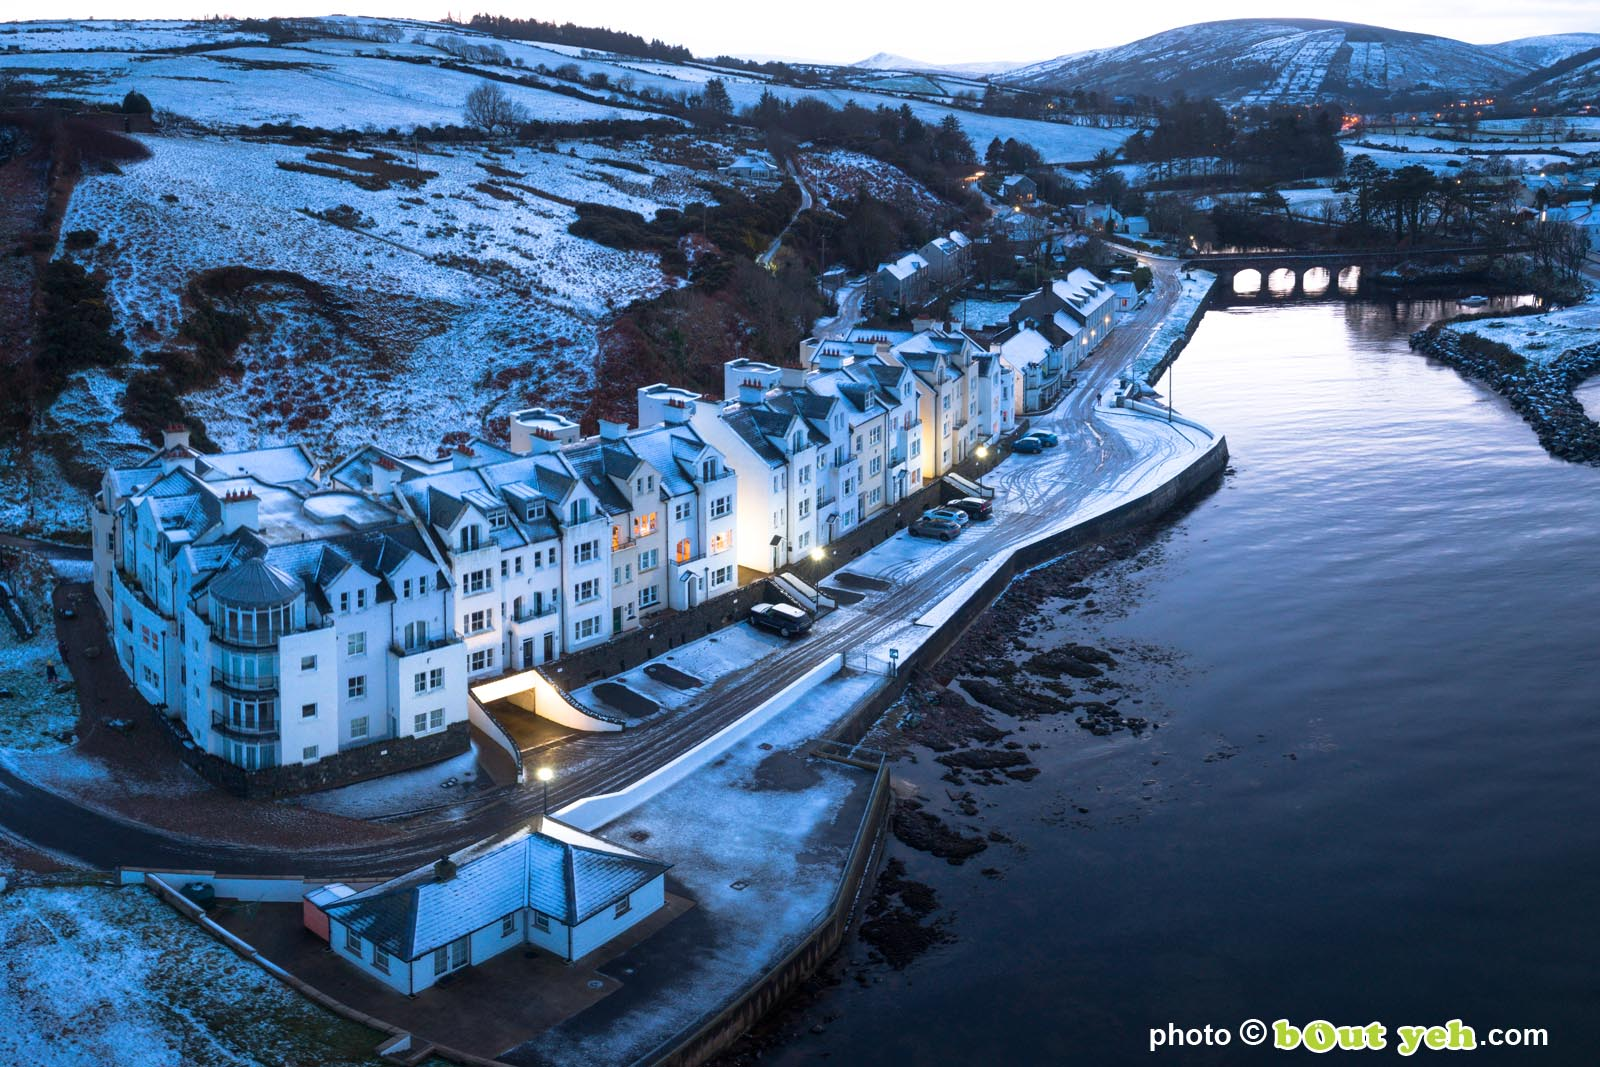 Aerial photograph of Bay Apartments Cushendun, Northern Ireland, in winter under snow at dusk by Bout Yeh photographers Belfast. Photo 231121